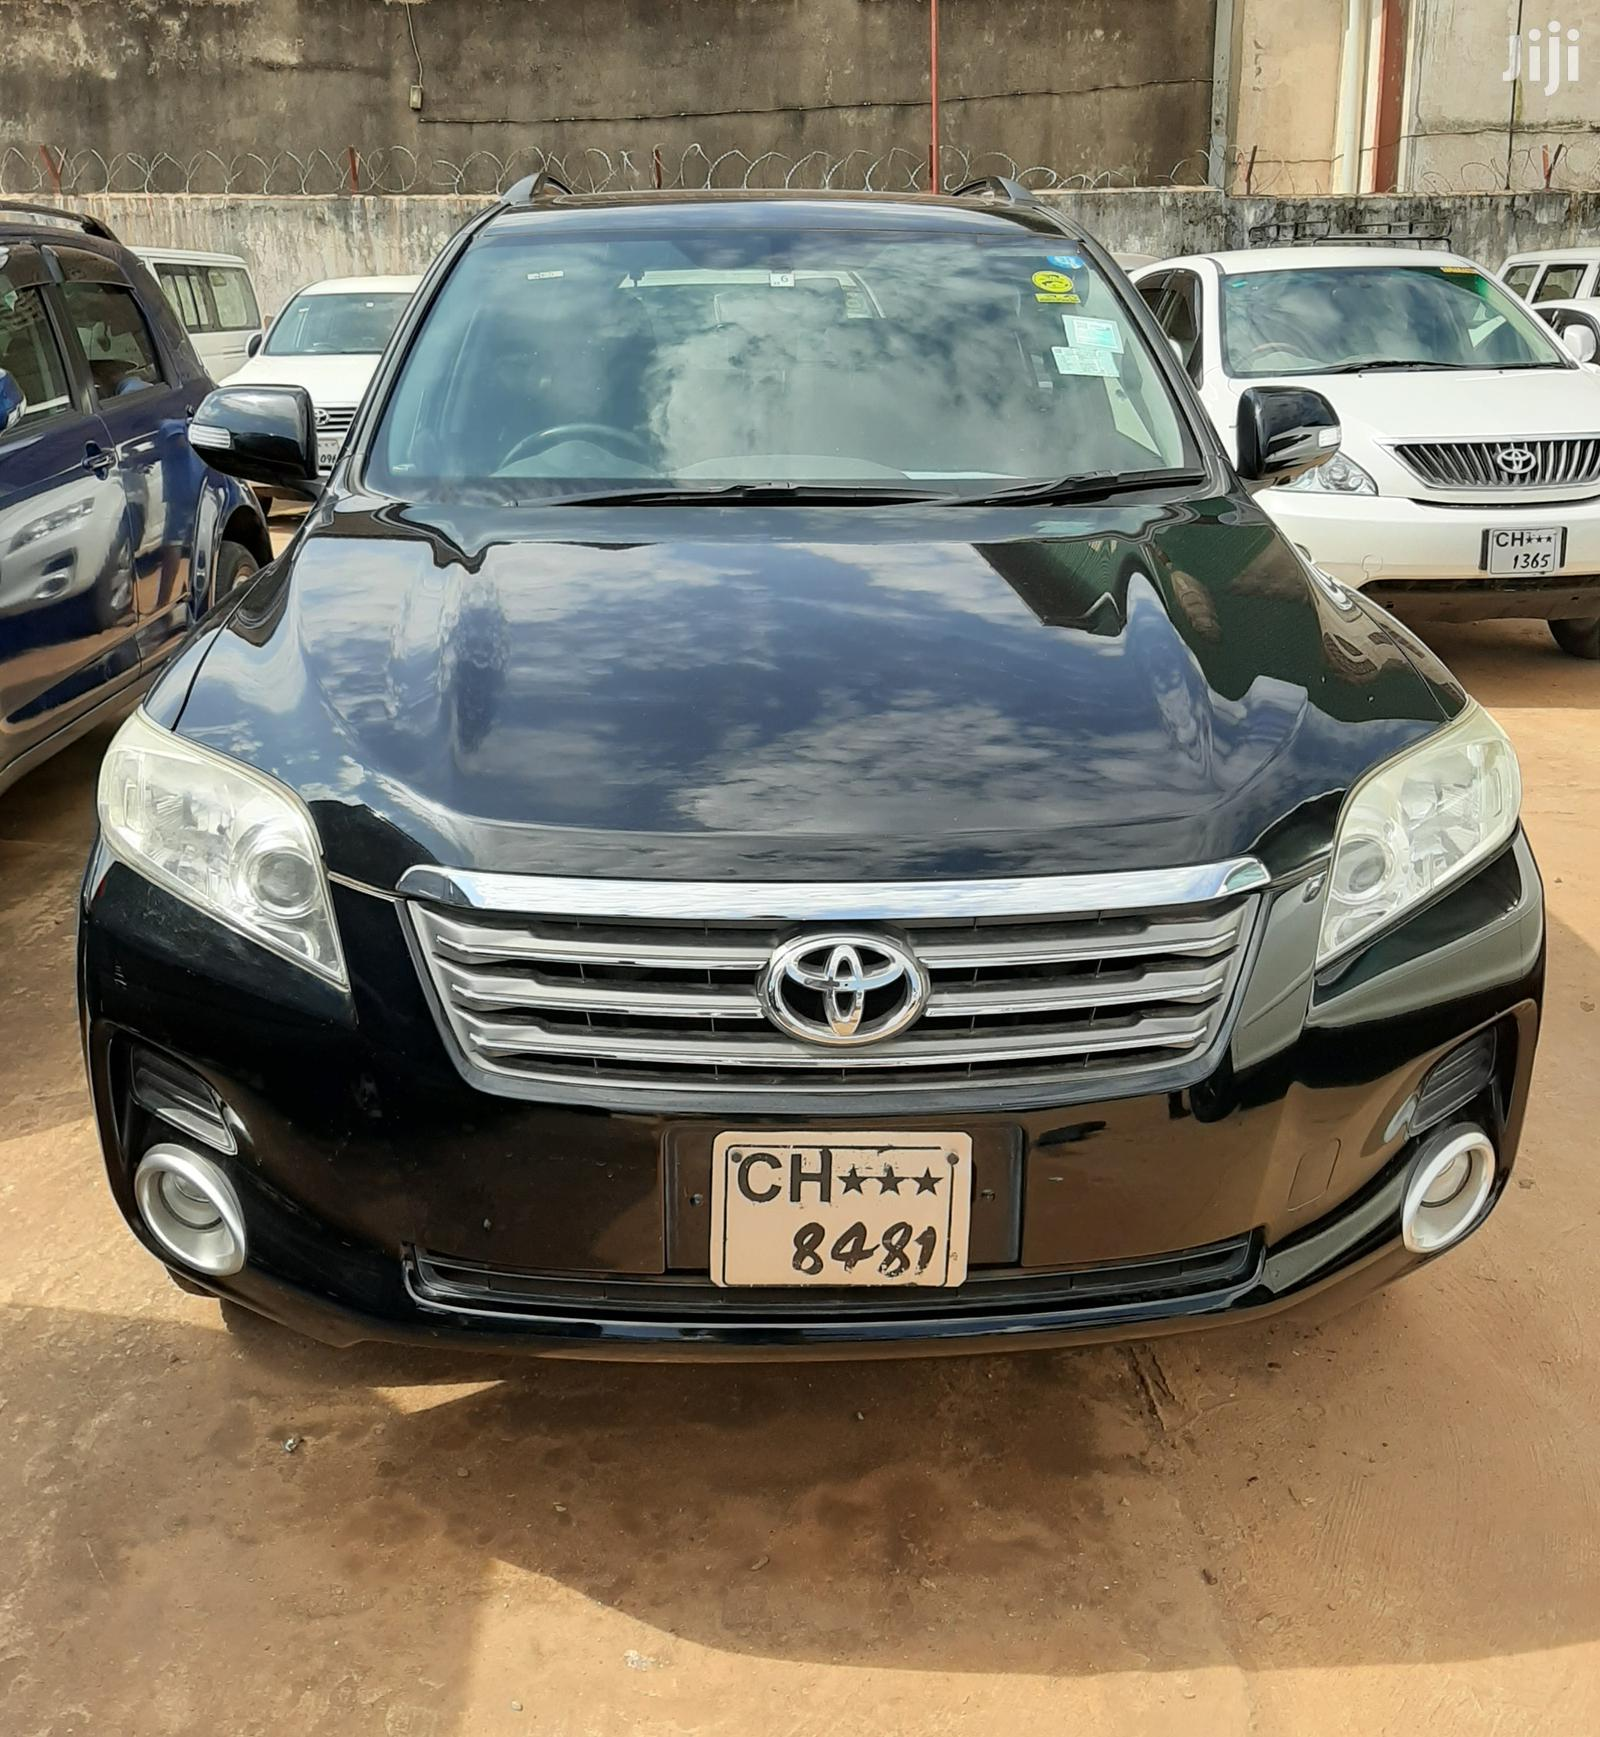 Toyota Vanguard 2009 Black | Cars for sale in Kampala, Central Region, Uganda